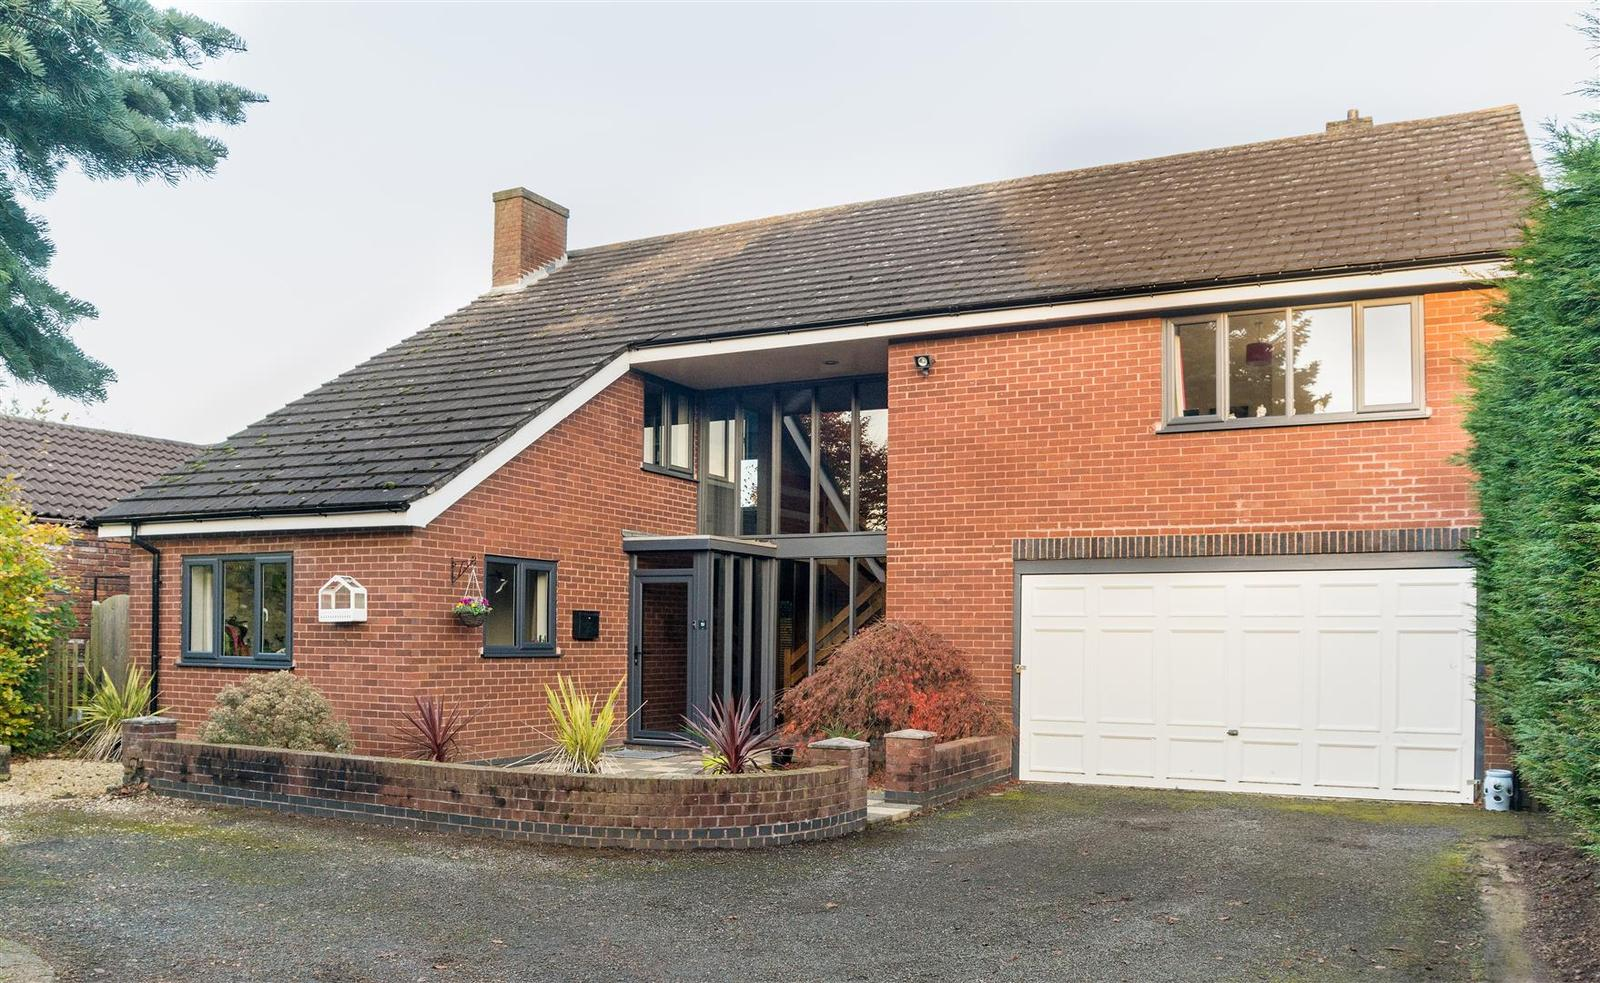 4 Bedrooms Property for sale in Acresford Road, Overseal, Swadlincote